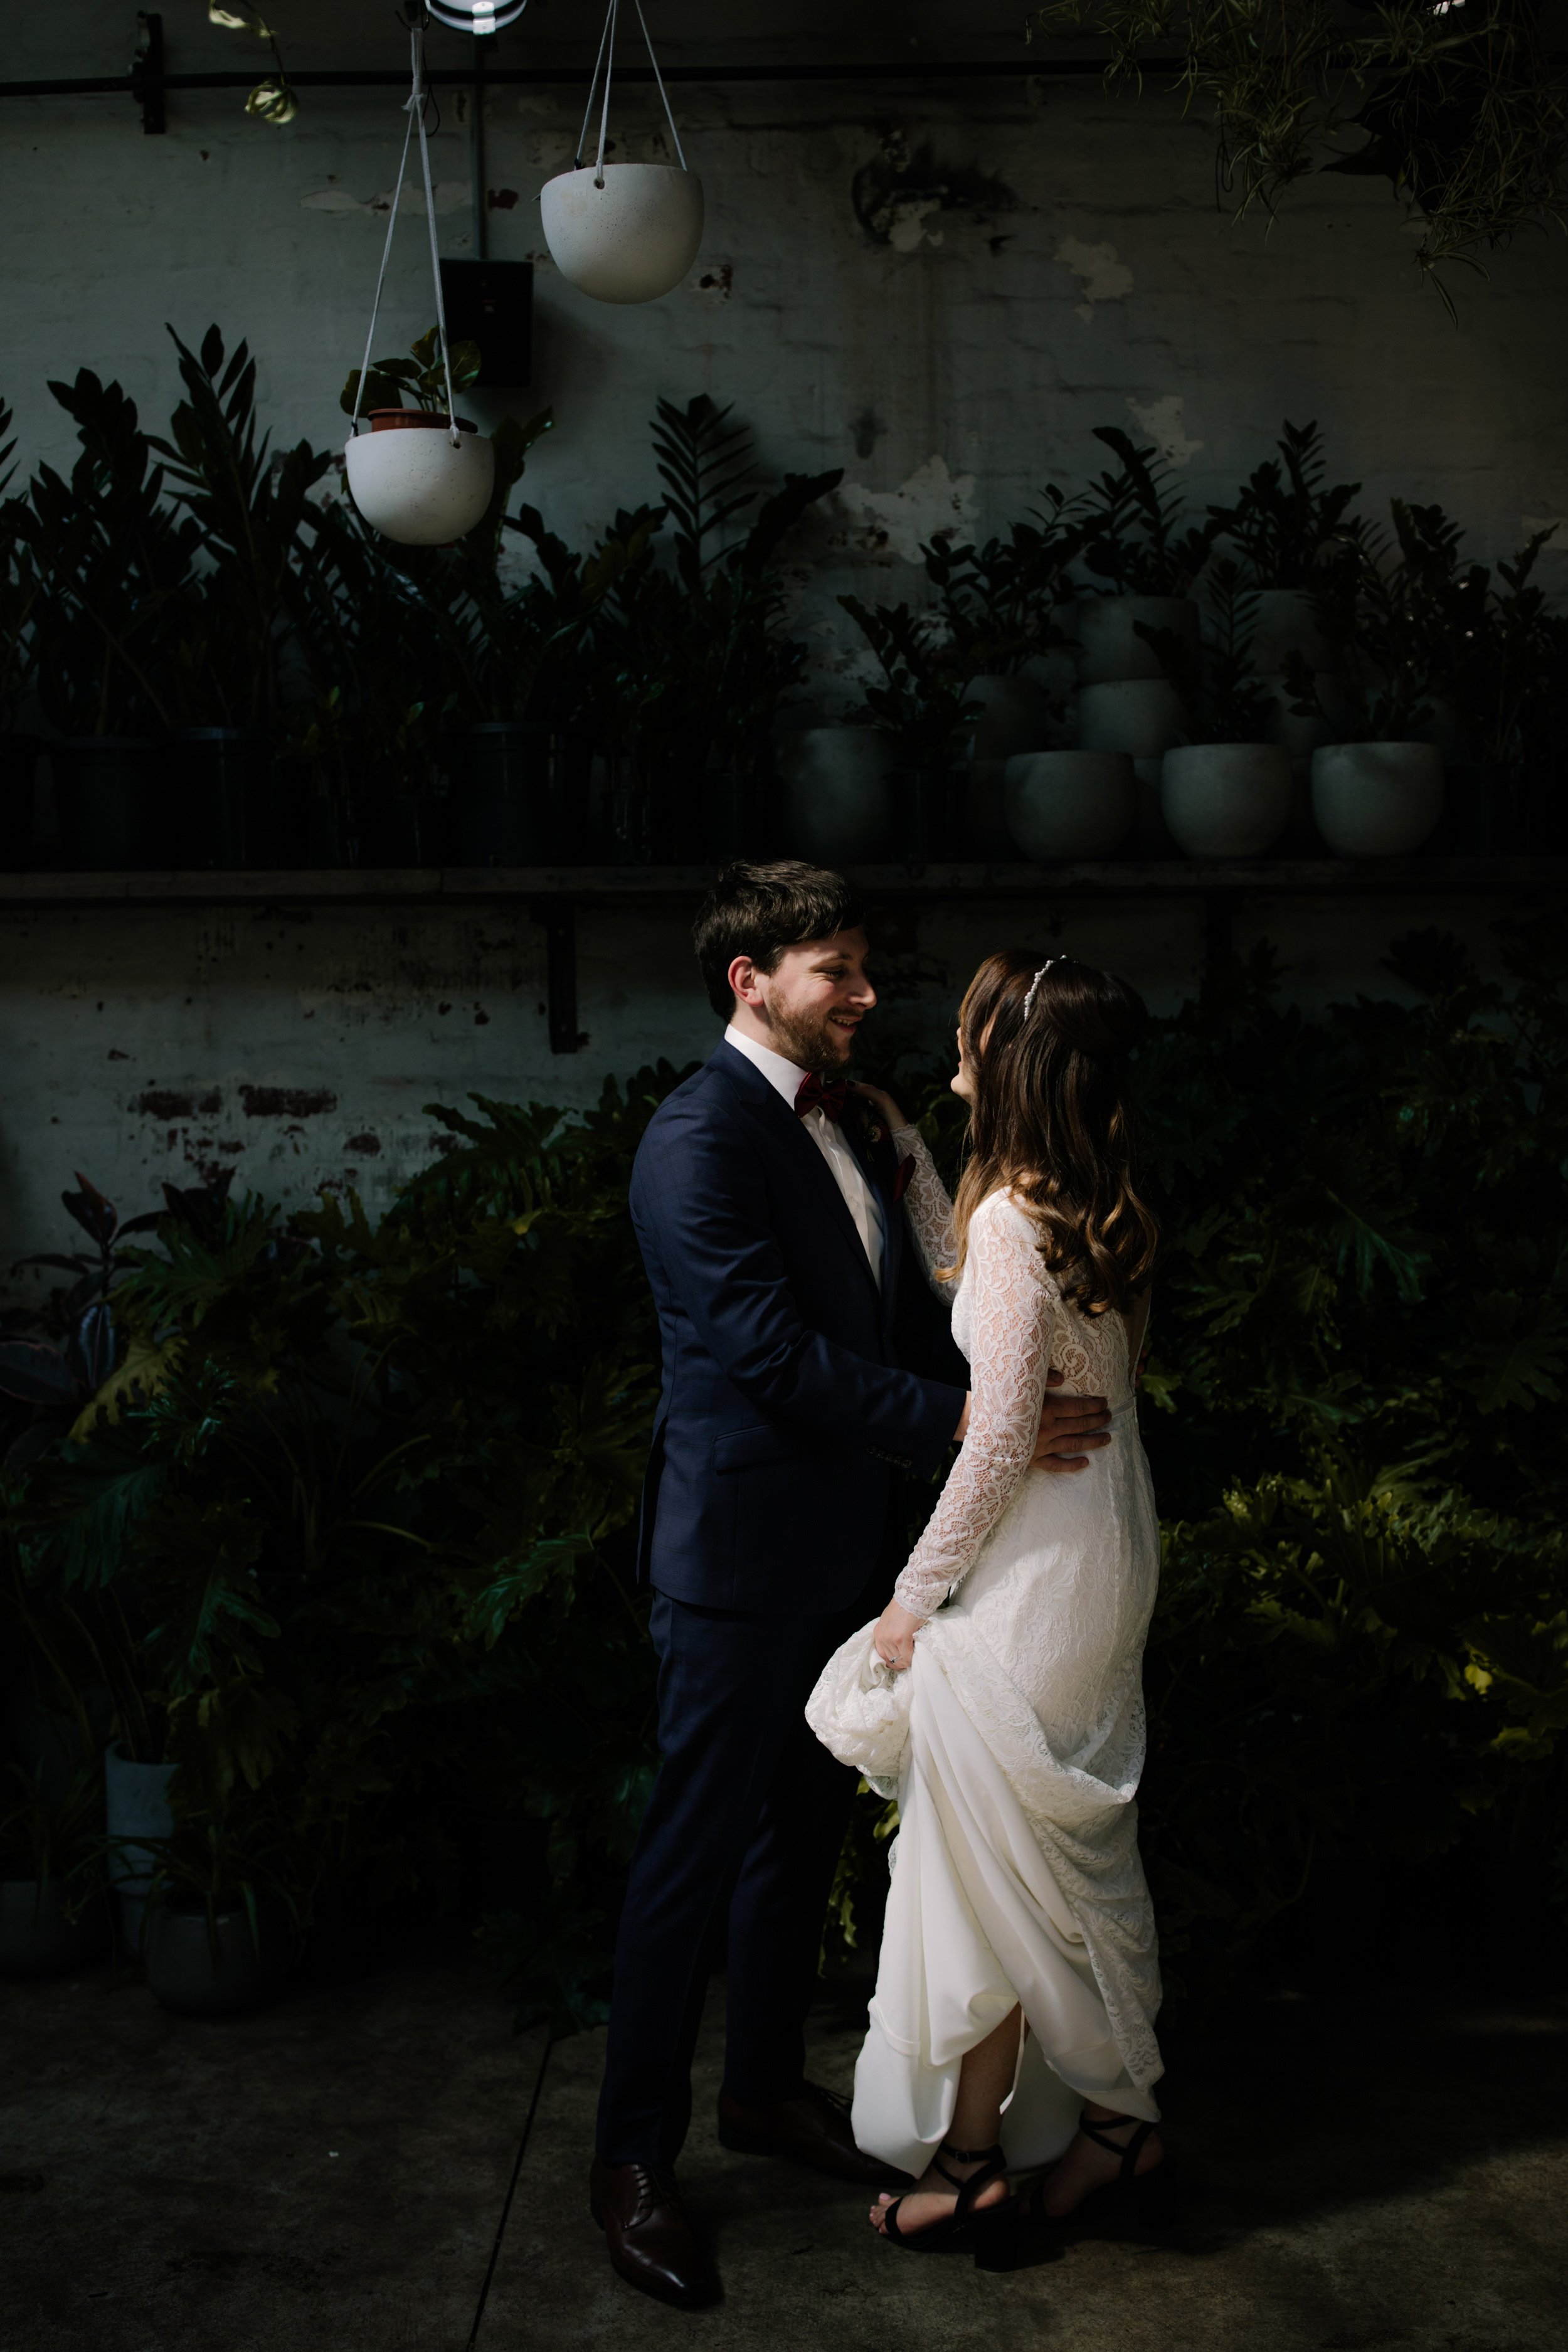 I_Got_You_Babe_Weddings_Emily_Matt_Rupert_Glasshaus_Melbourne0037.JPG